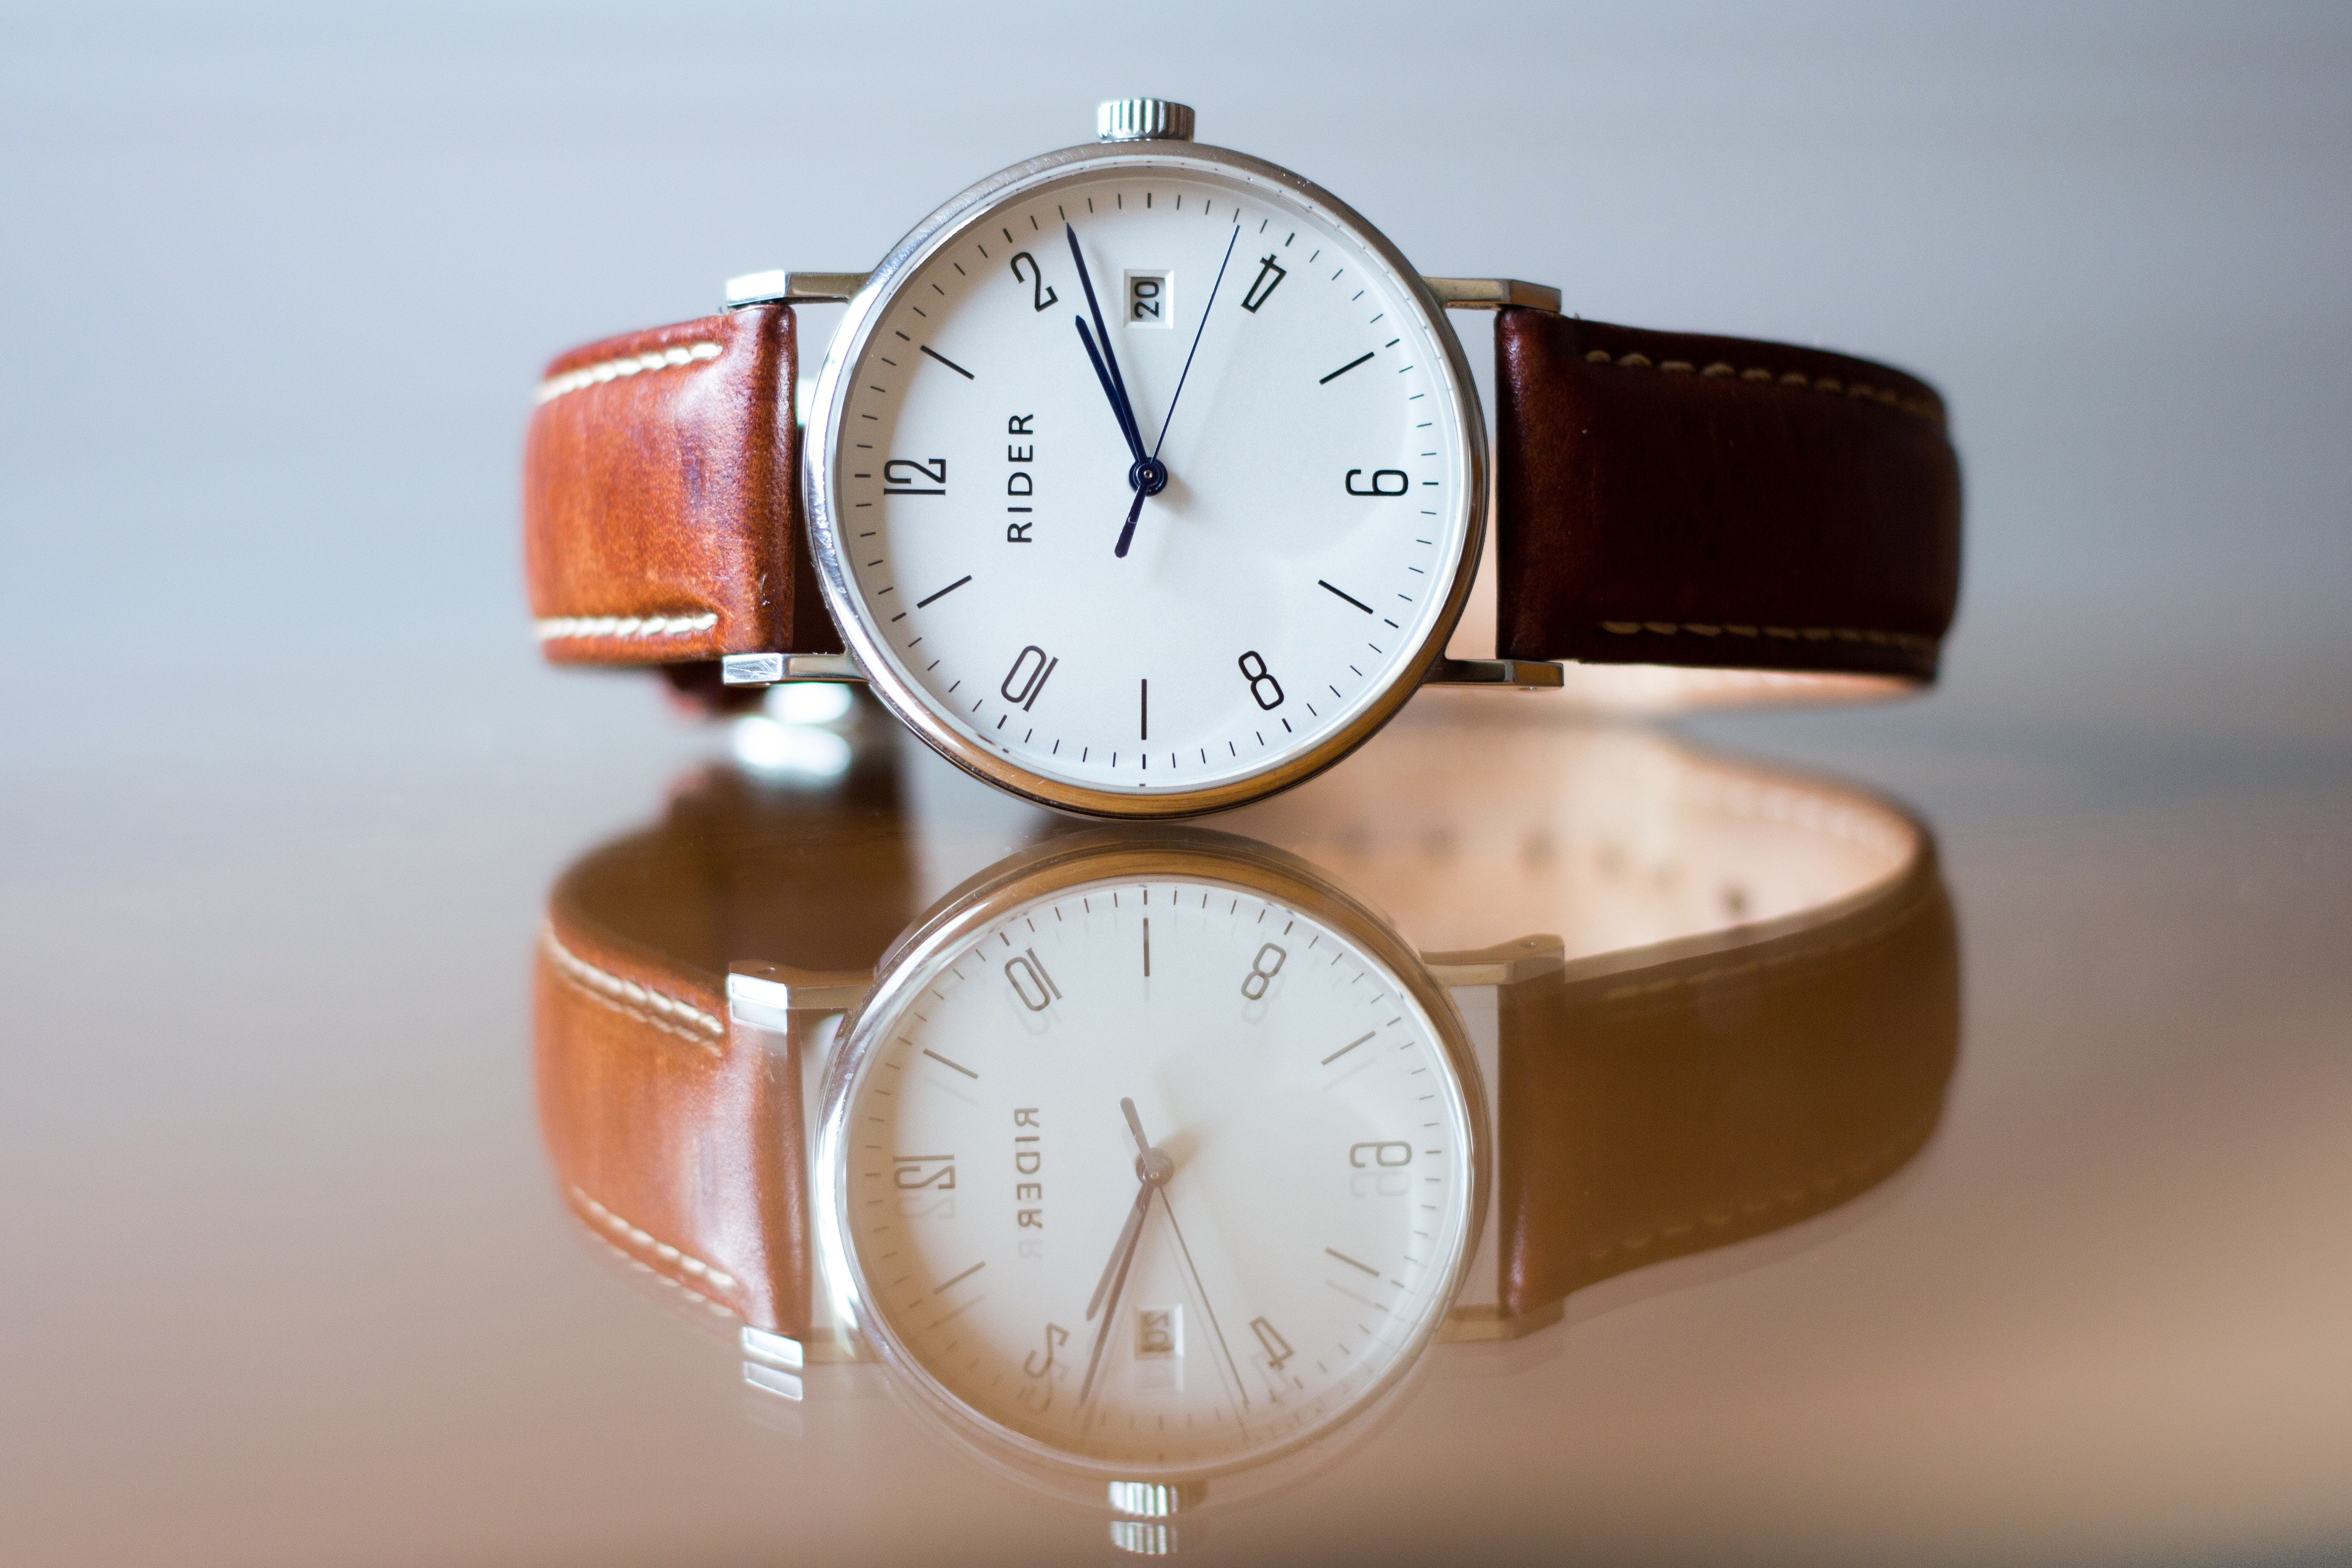 Analog, minute, time, watch